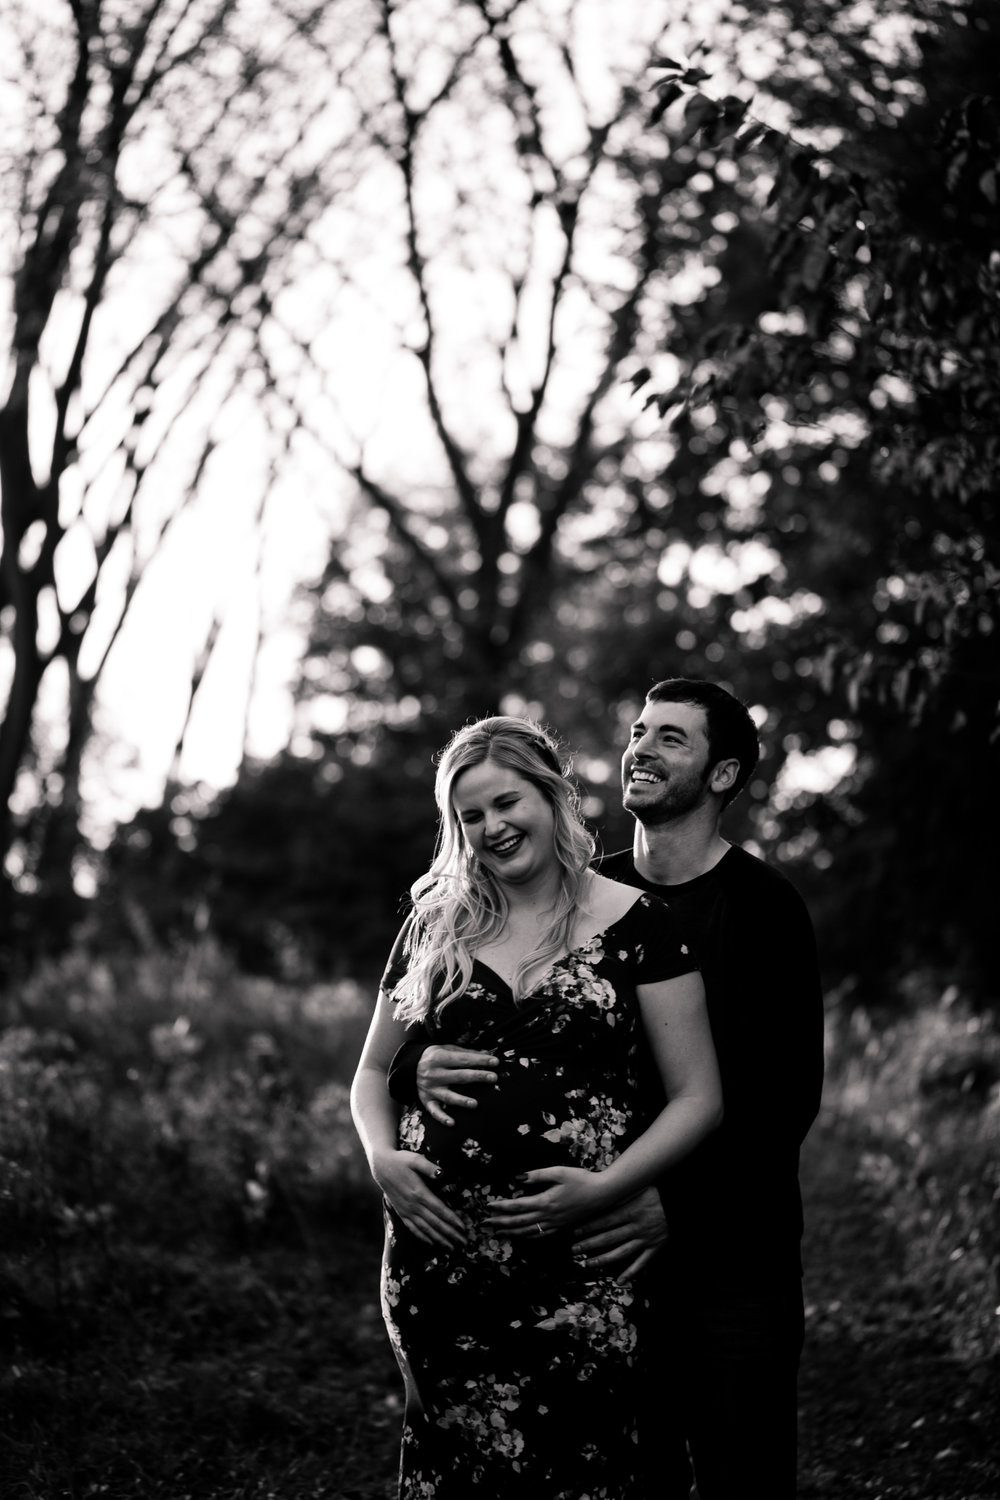 des Moines iowa maternity photographers amelia reneee